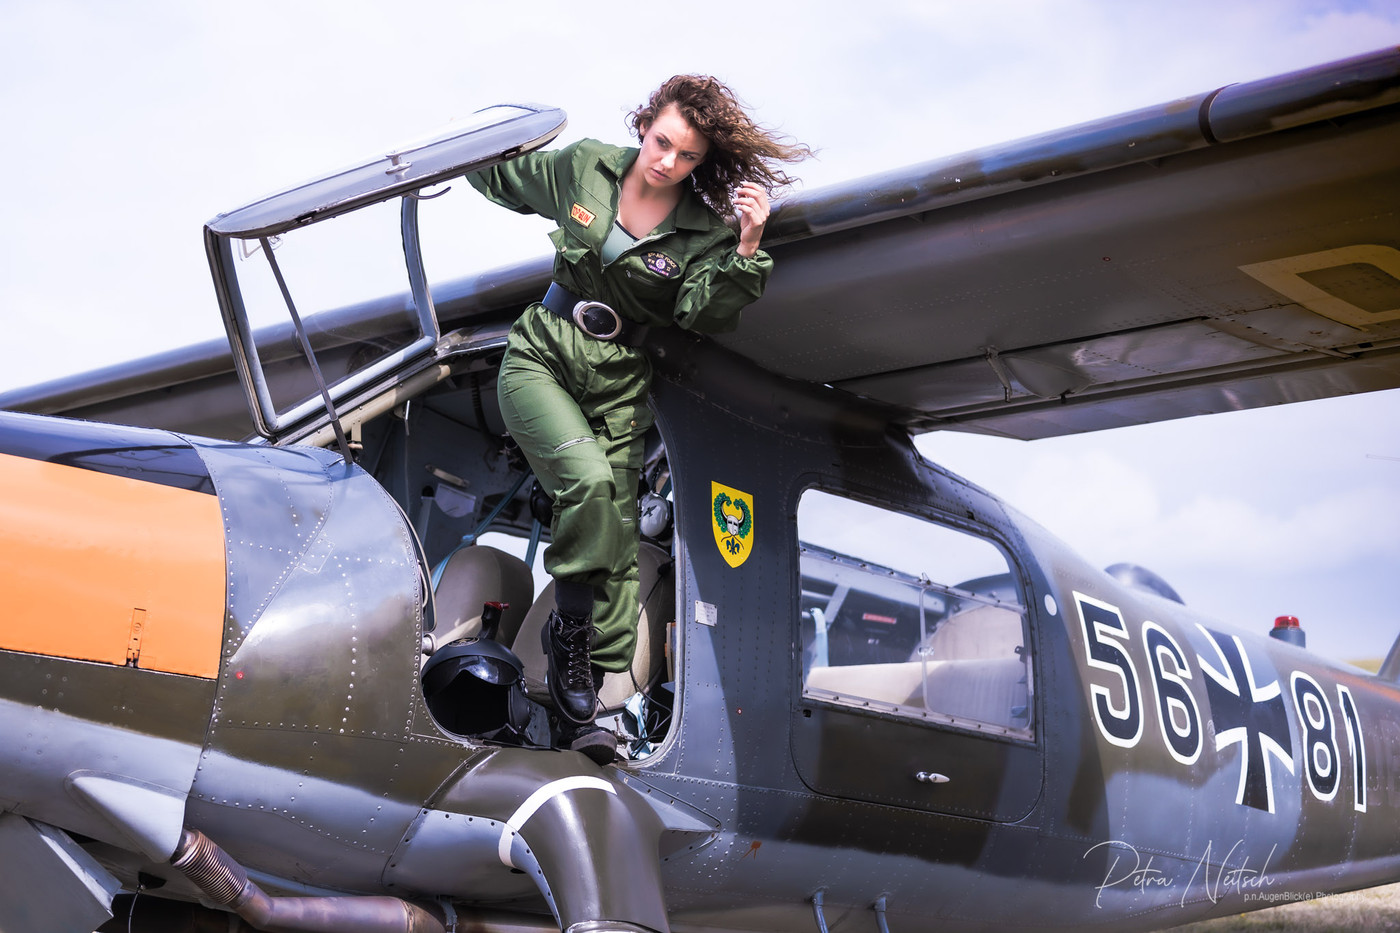 09-2019-Planes Girls and Rockn Roll-16-1